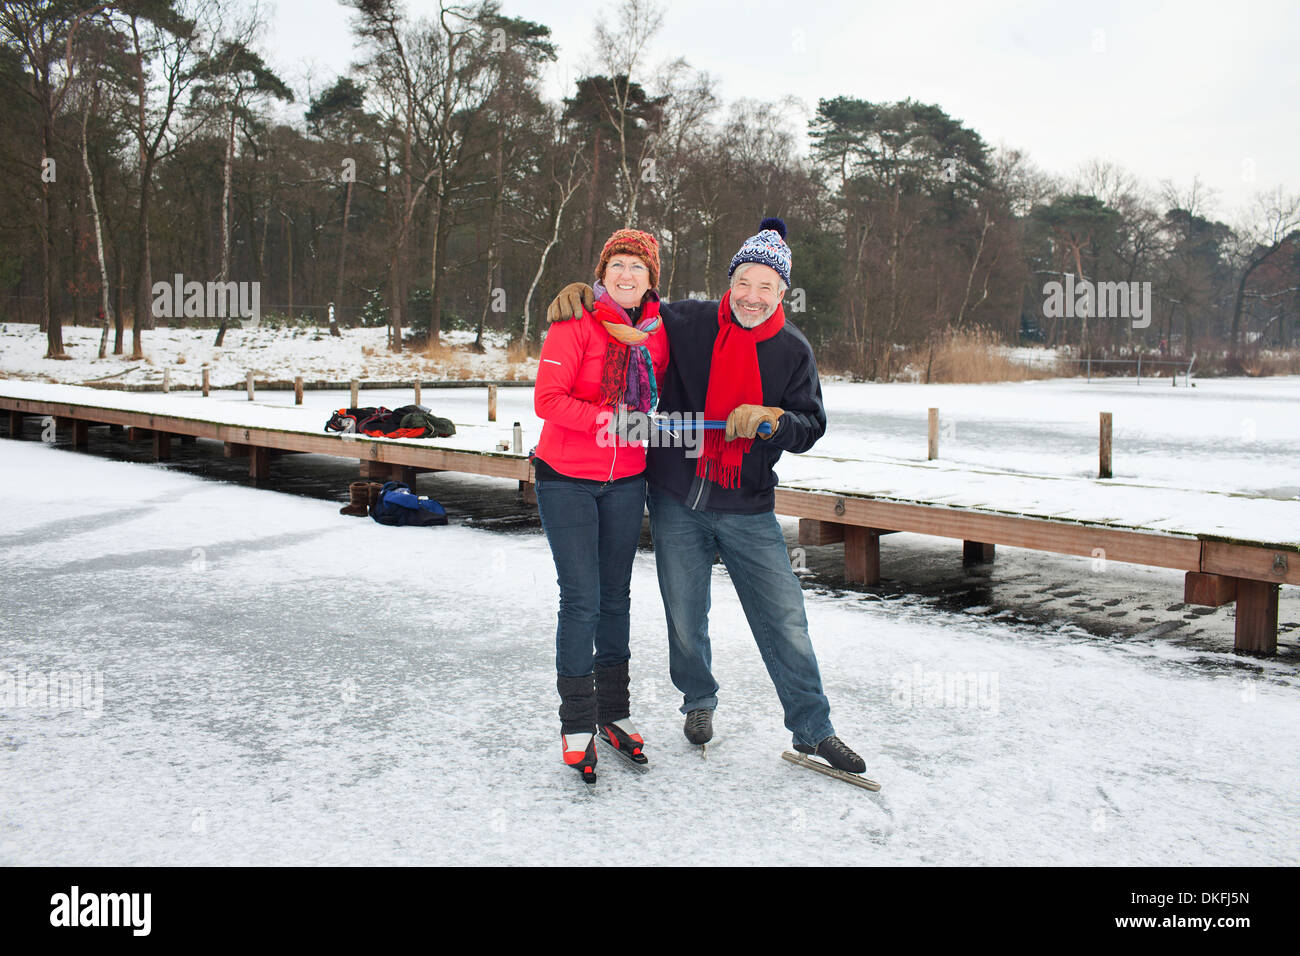 Couple ice skating, holding hands - Stock Image